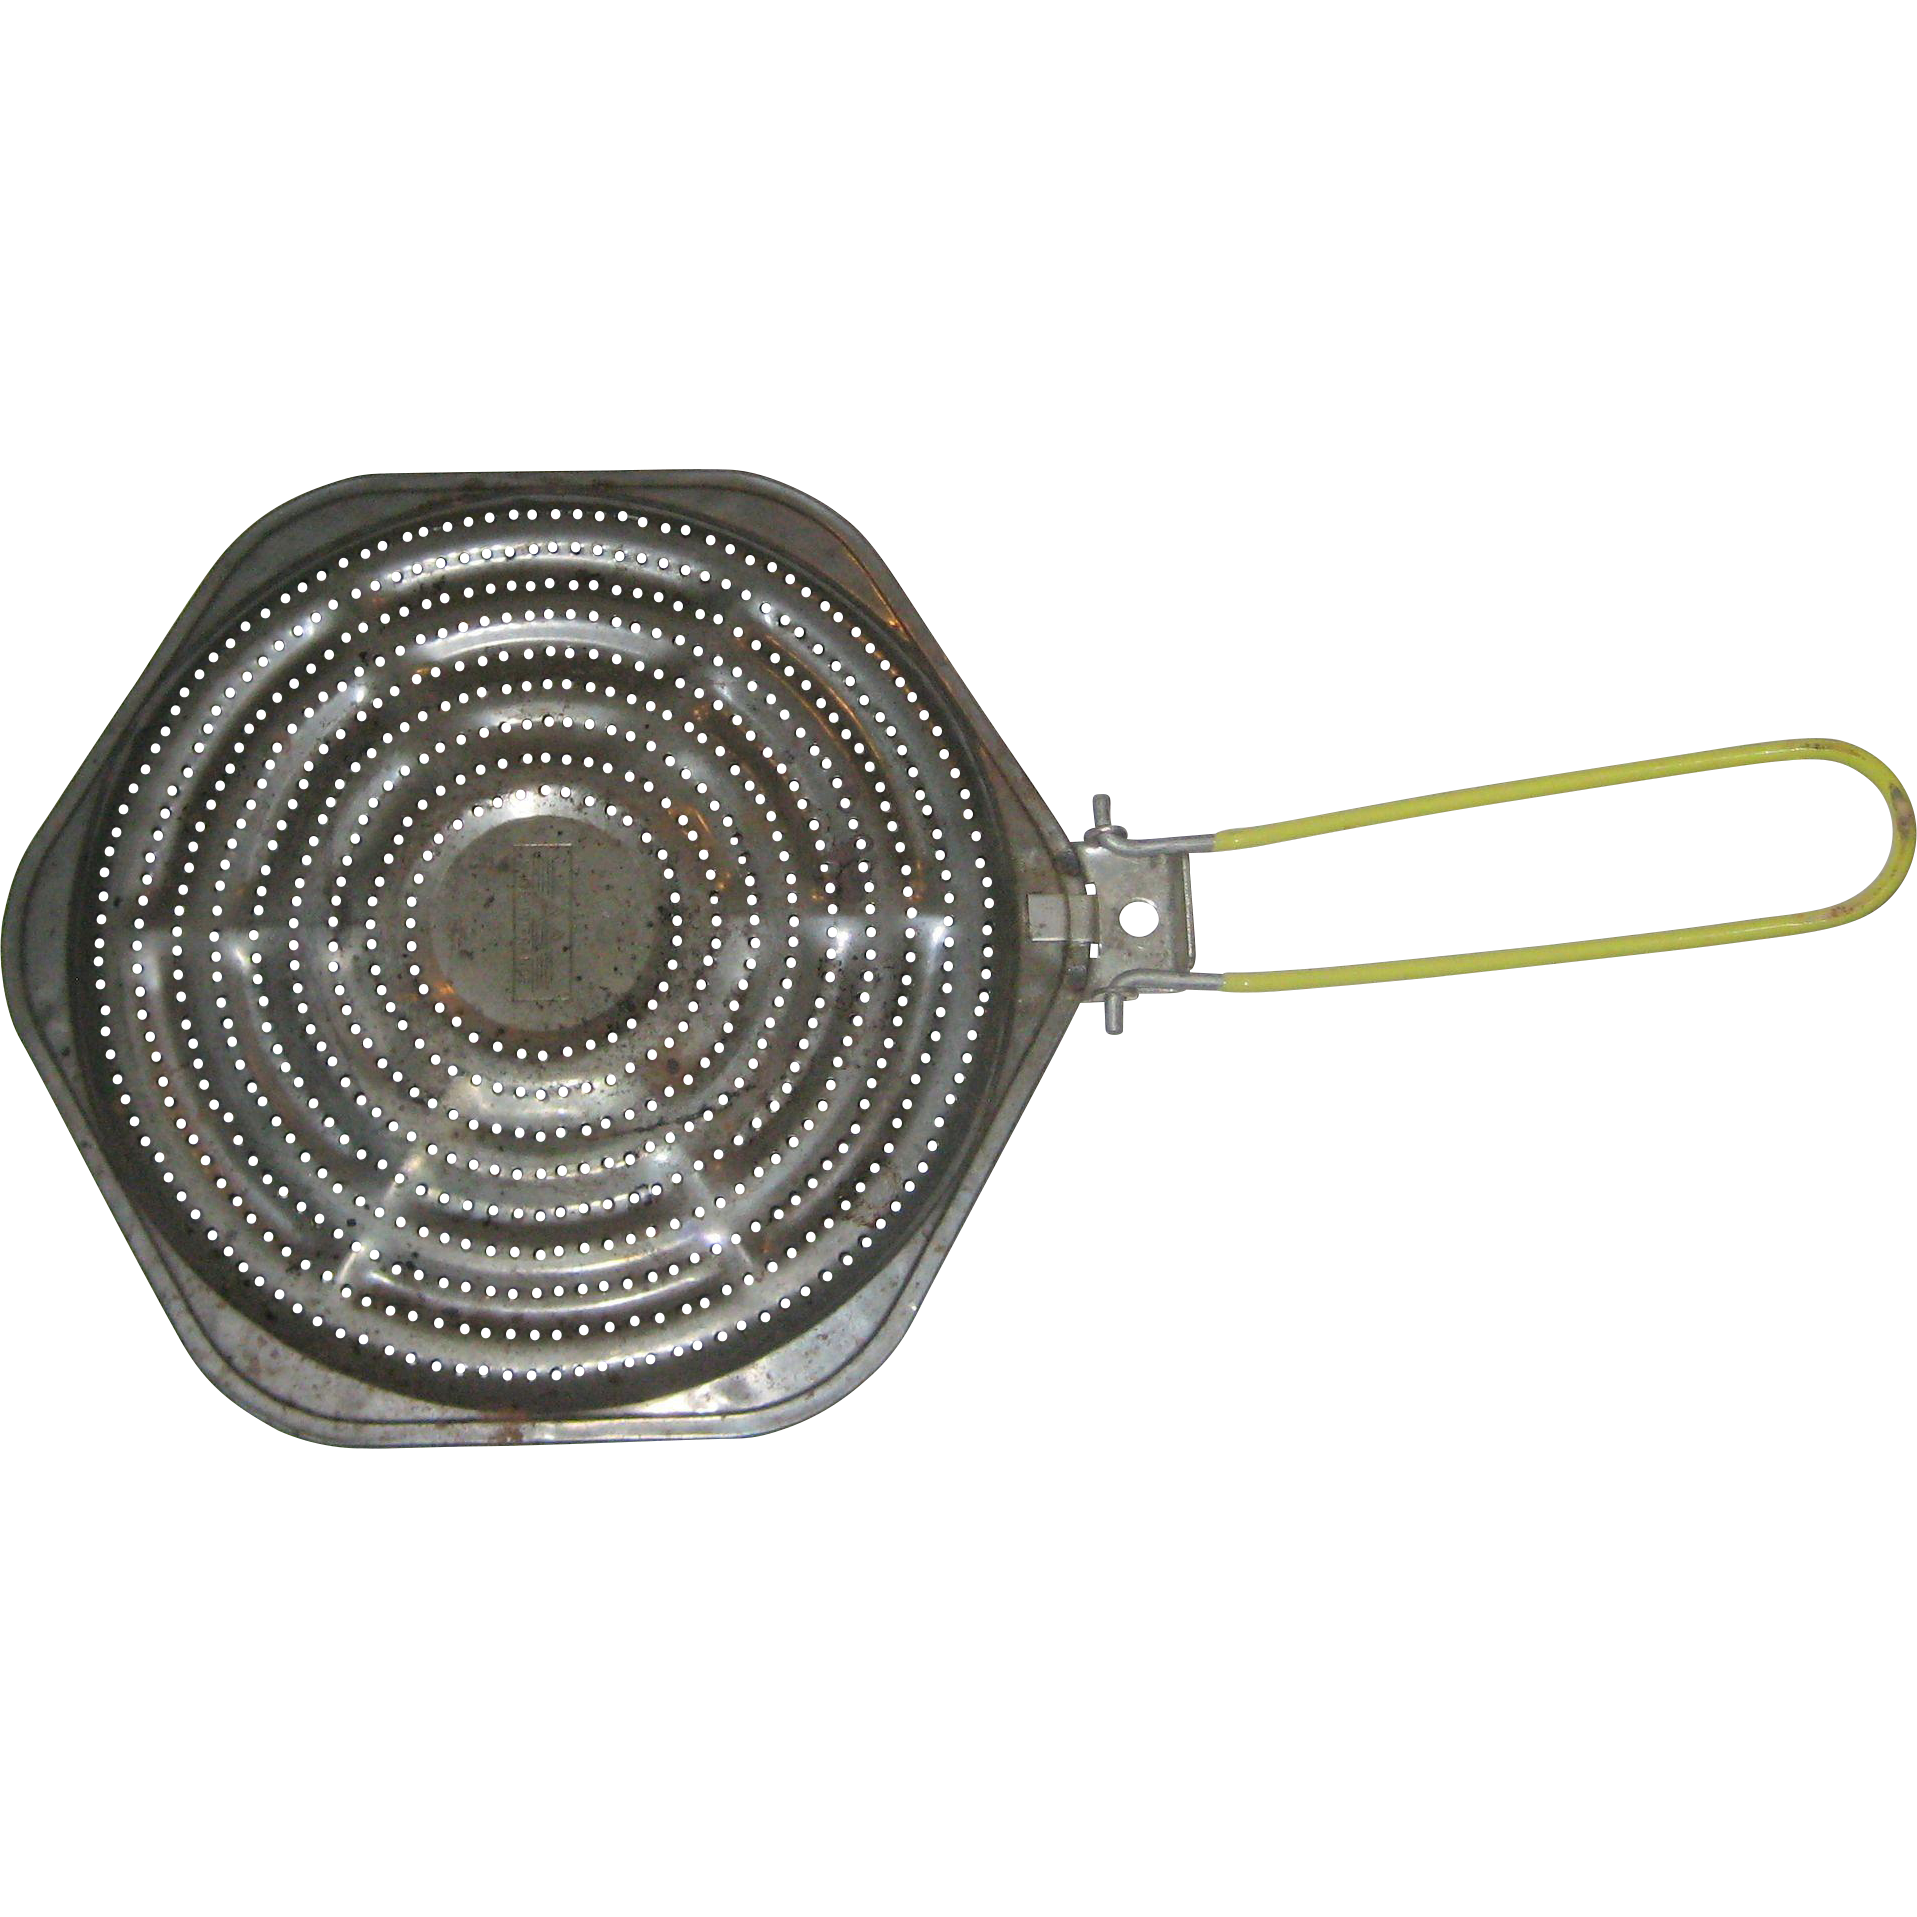 Vintage Octagonal Stovetop Heat Diffuser with Folding Handle - Made in France